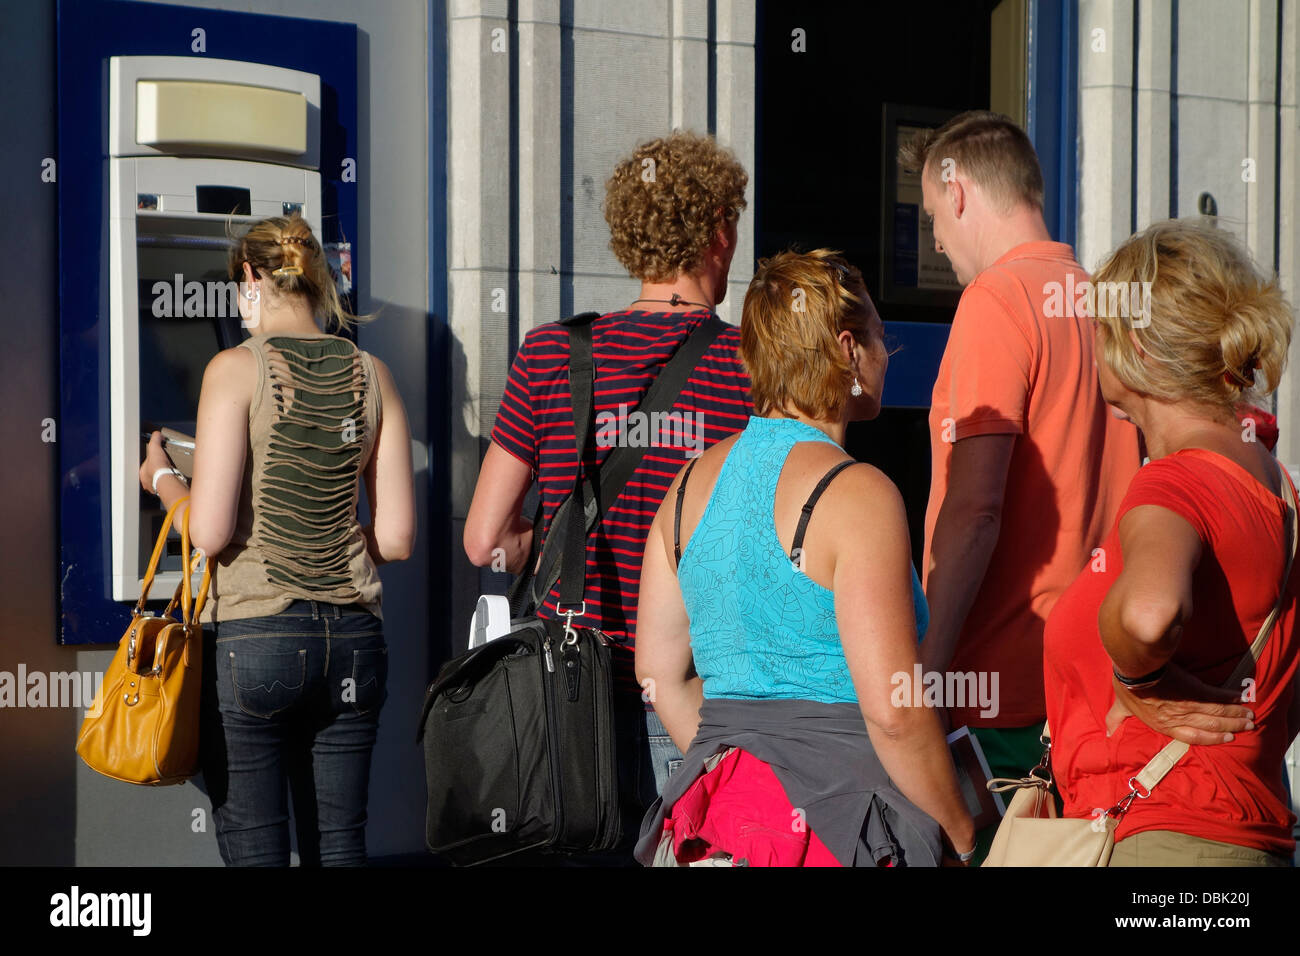 Shoppers waiting in queue to collect money from ATM cash dispenser at cashpoint of bank in shopping street - Stock Image